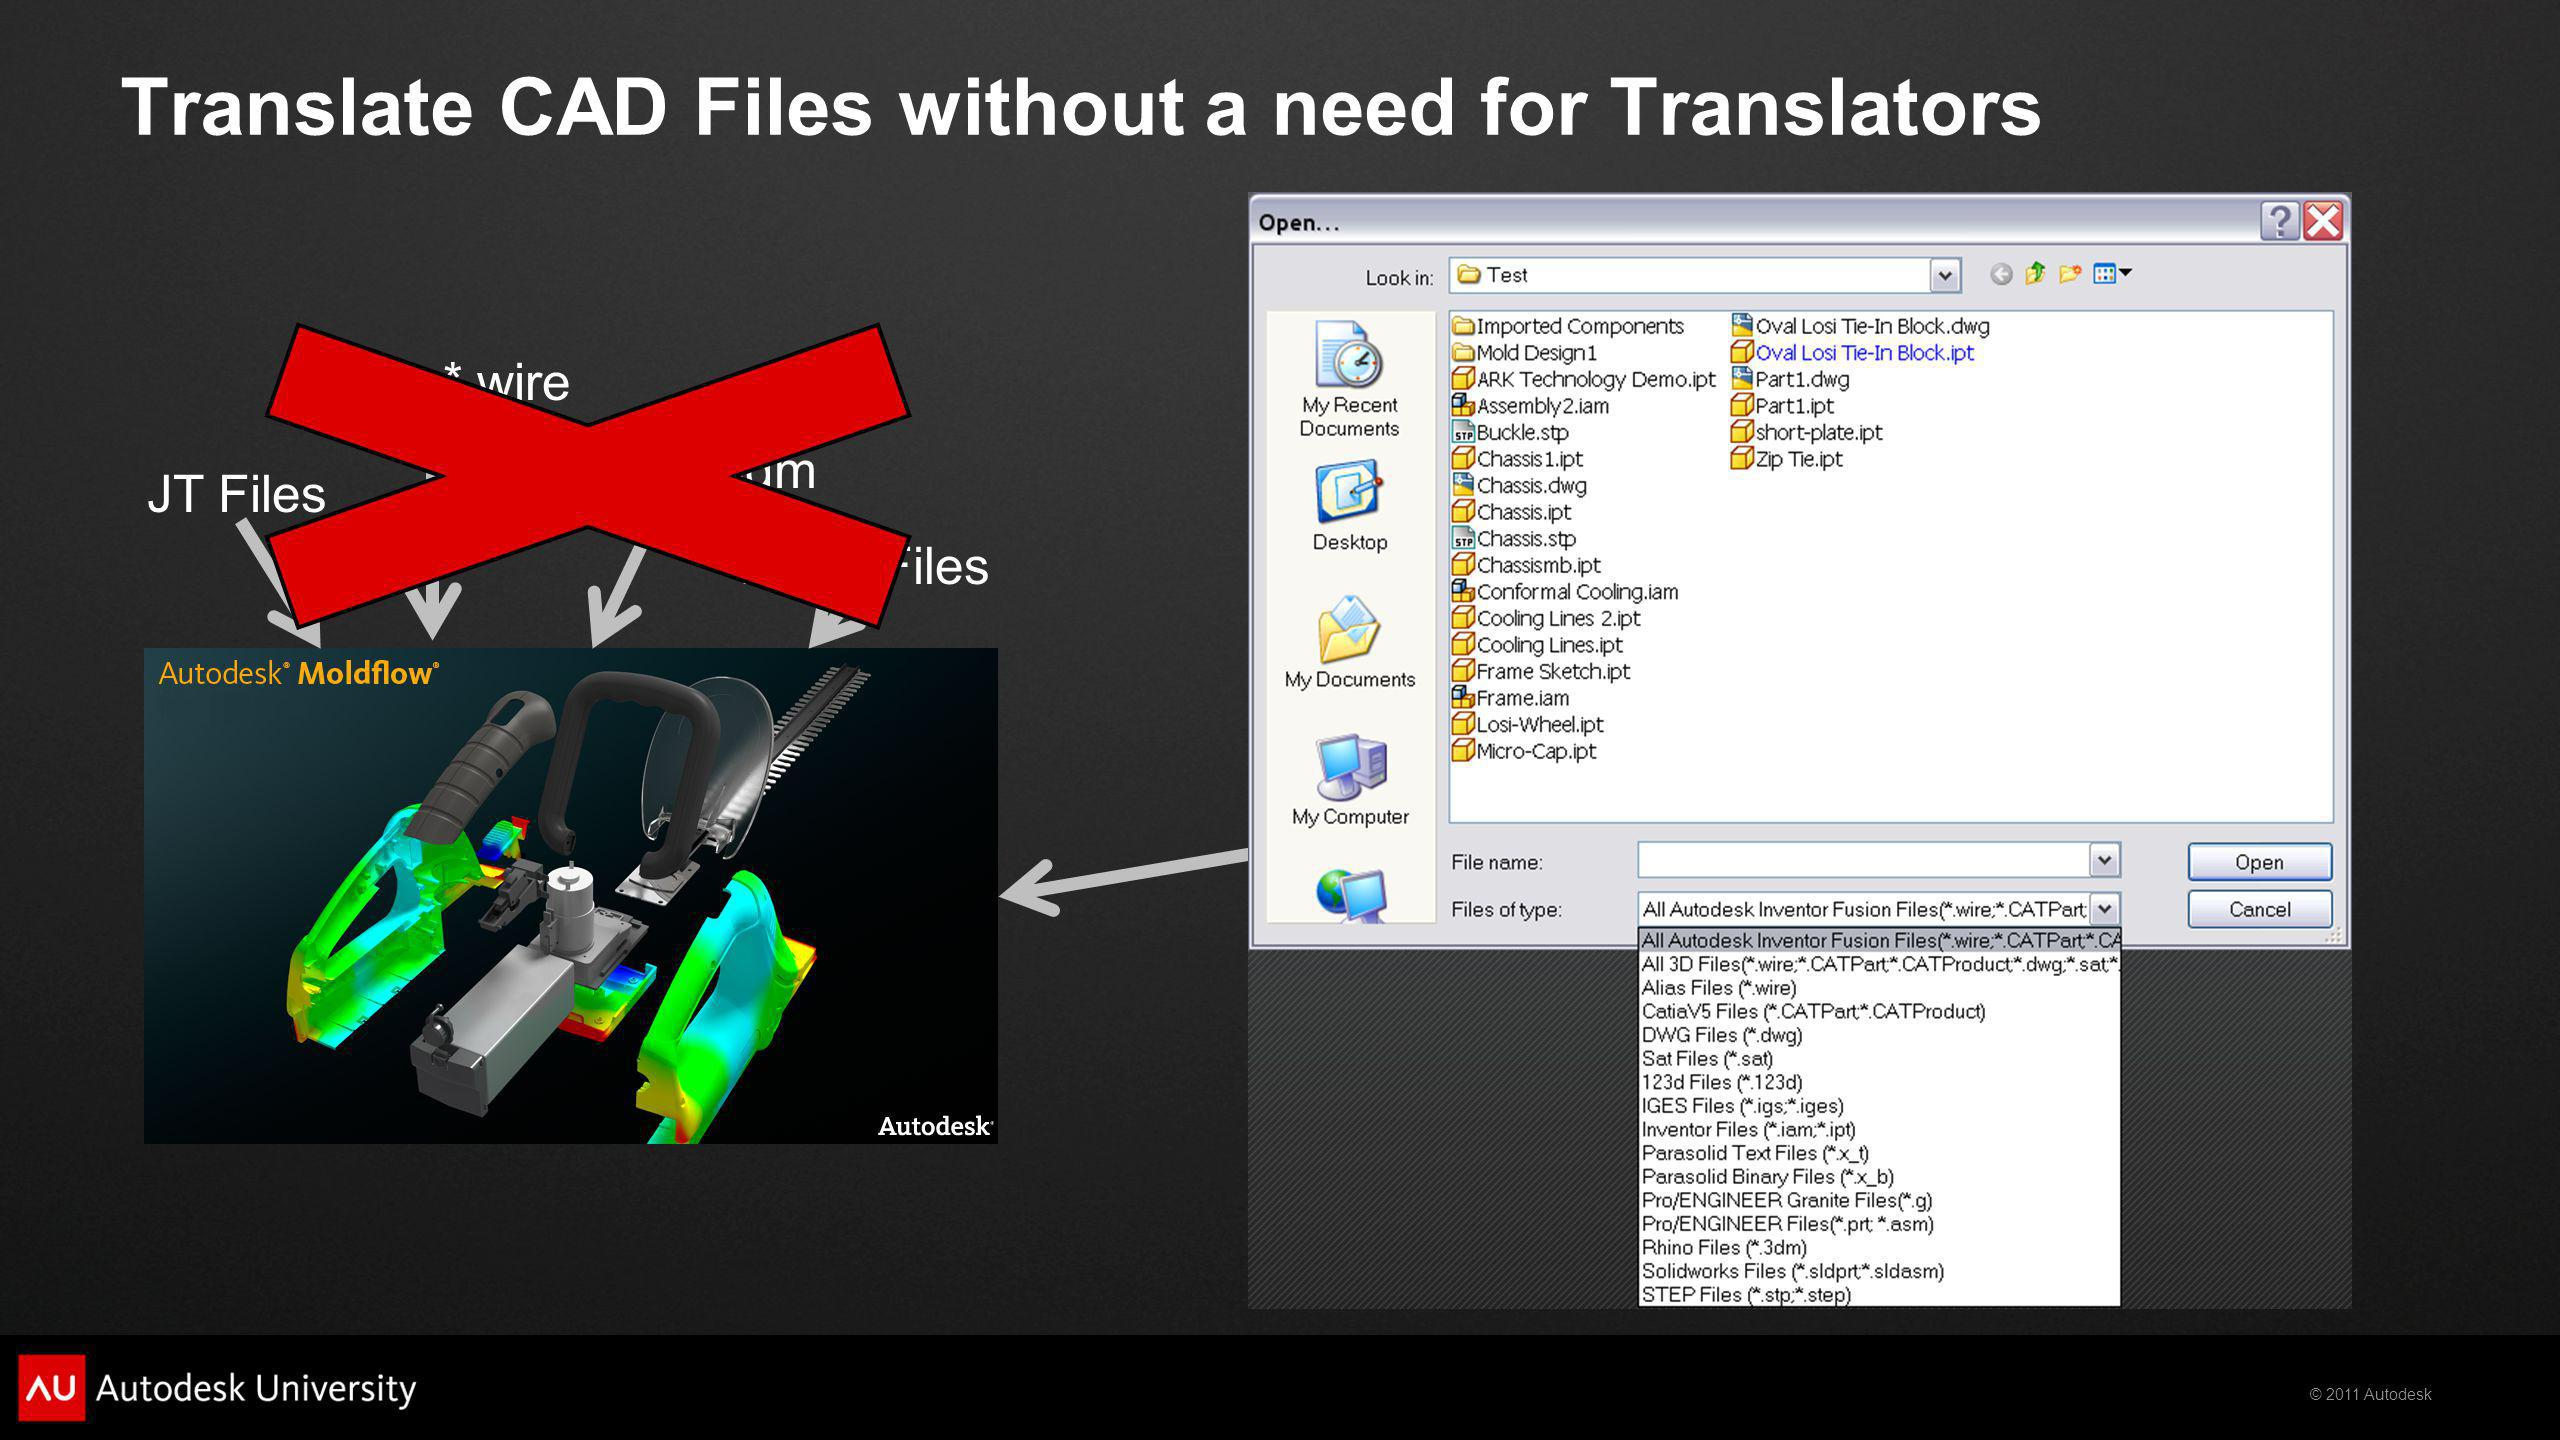 Translate CAD Files without a need for Translators